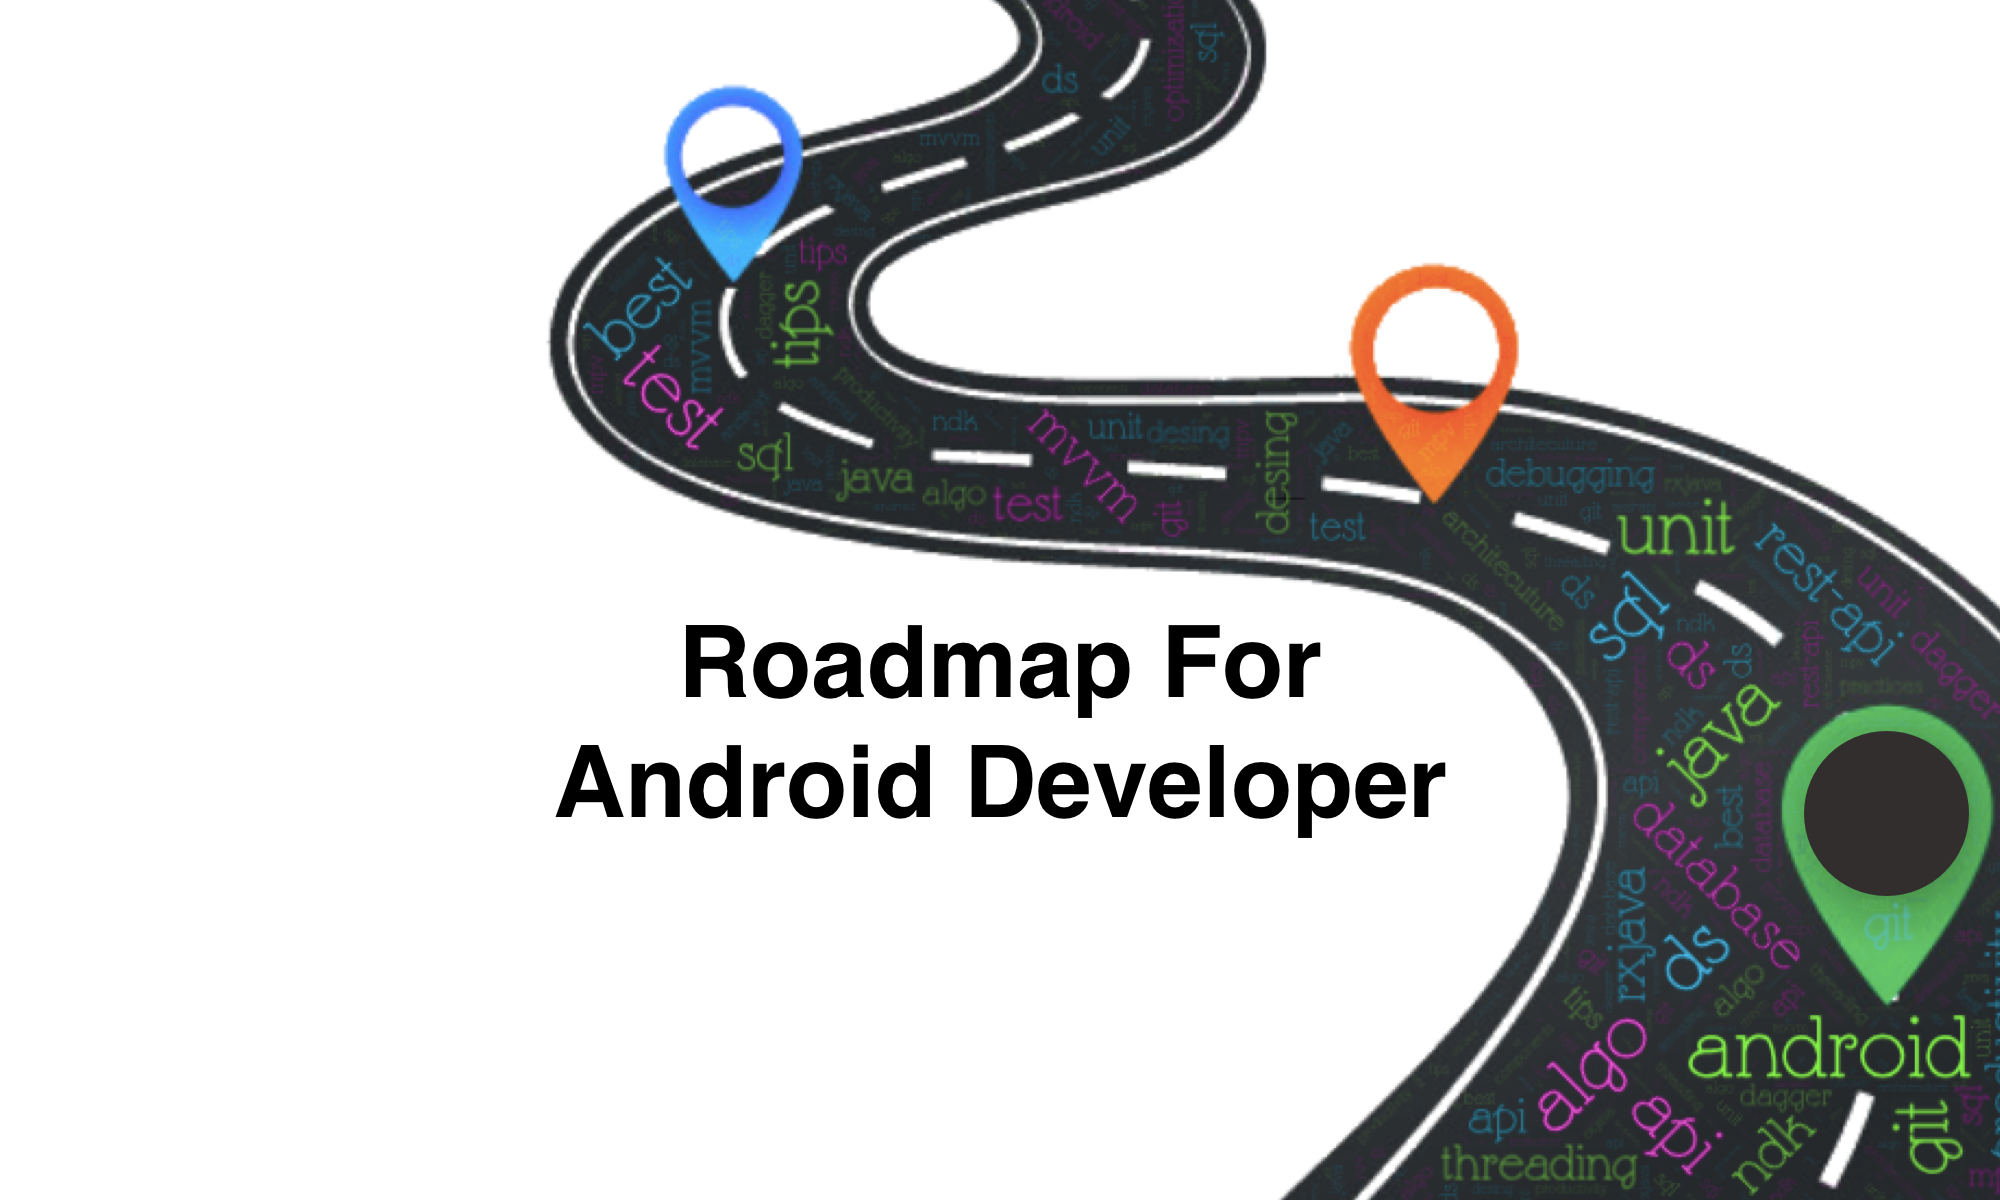 A Roadmap To Become A Better Android Developer - MindOrks